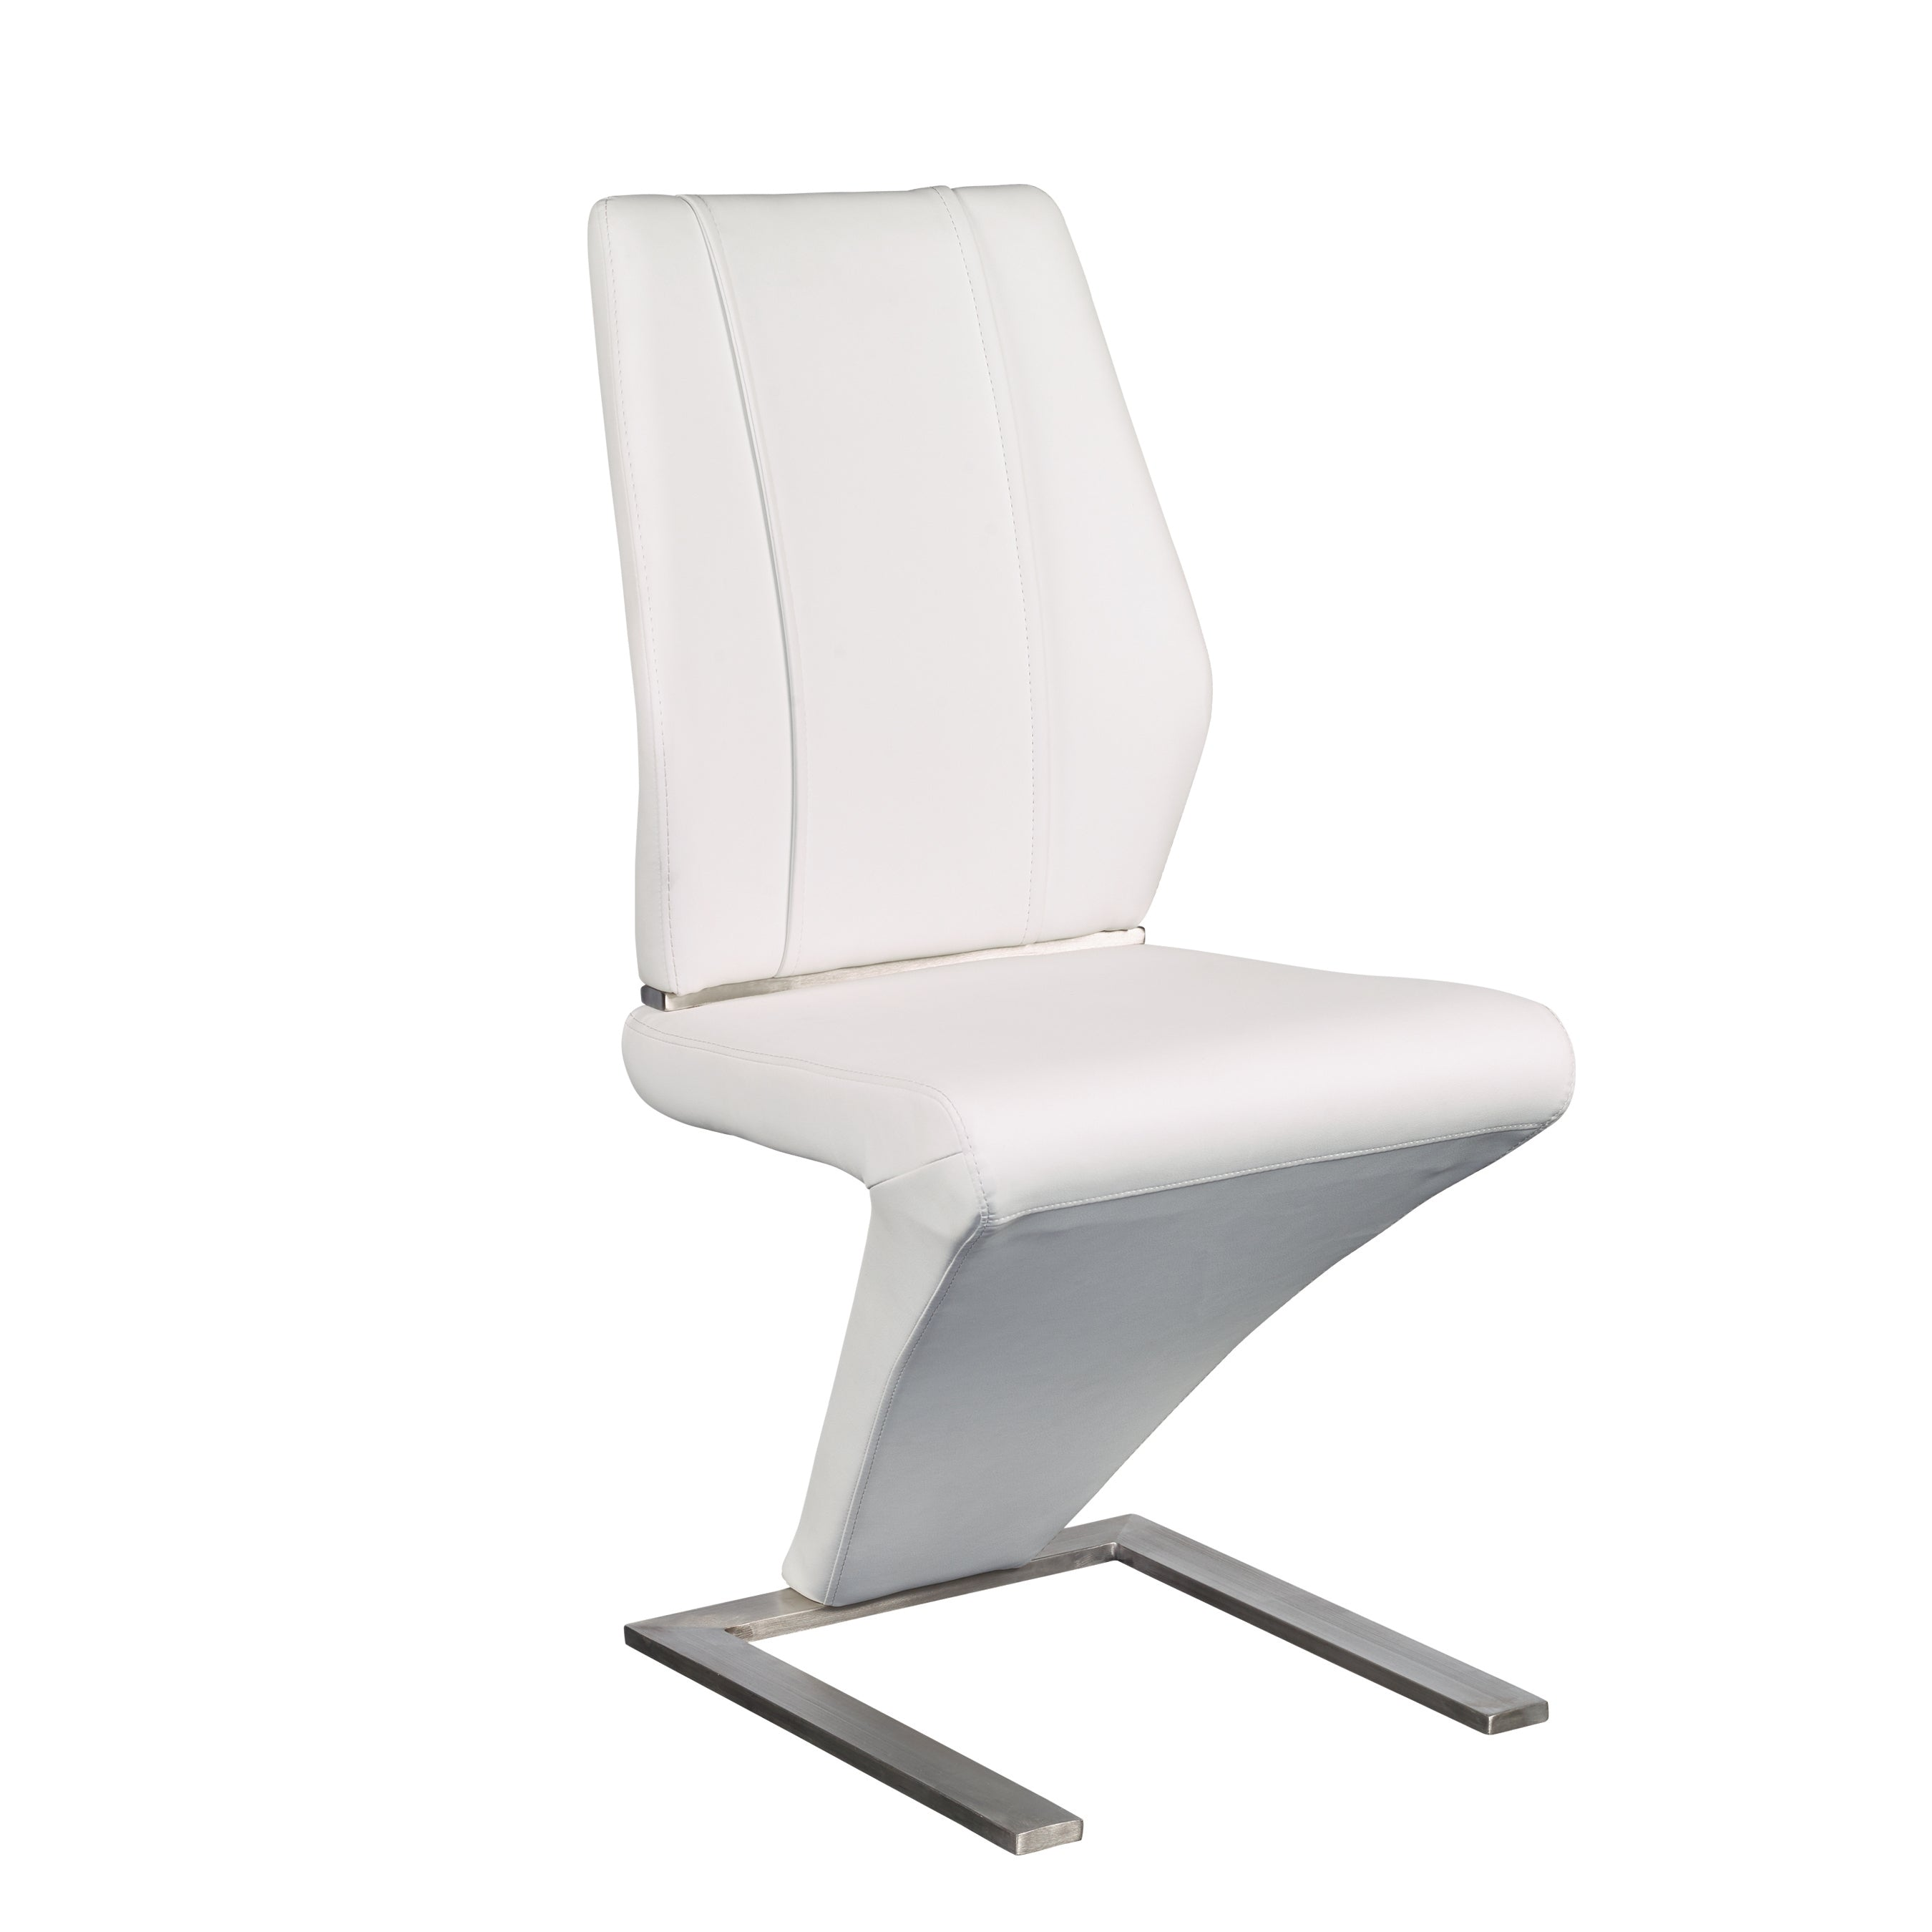 Modern White Leatherette Guest or Conference Chairs (Set of 2)